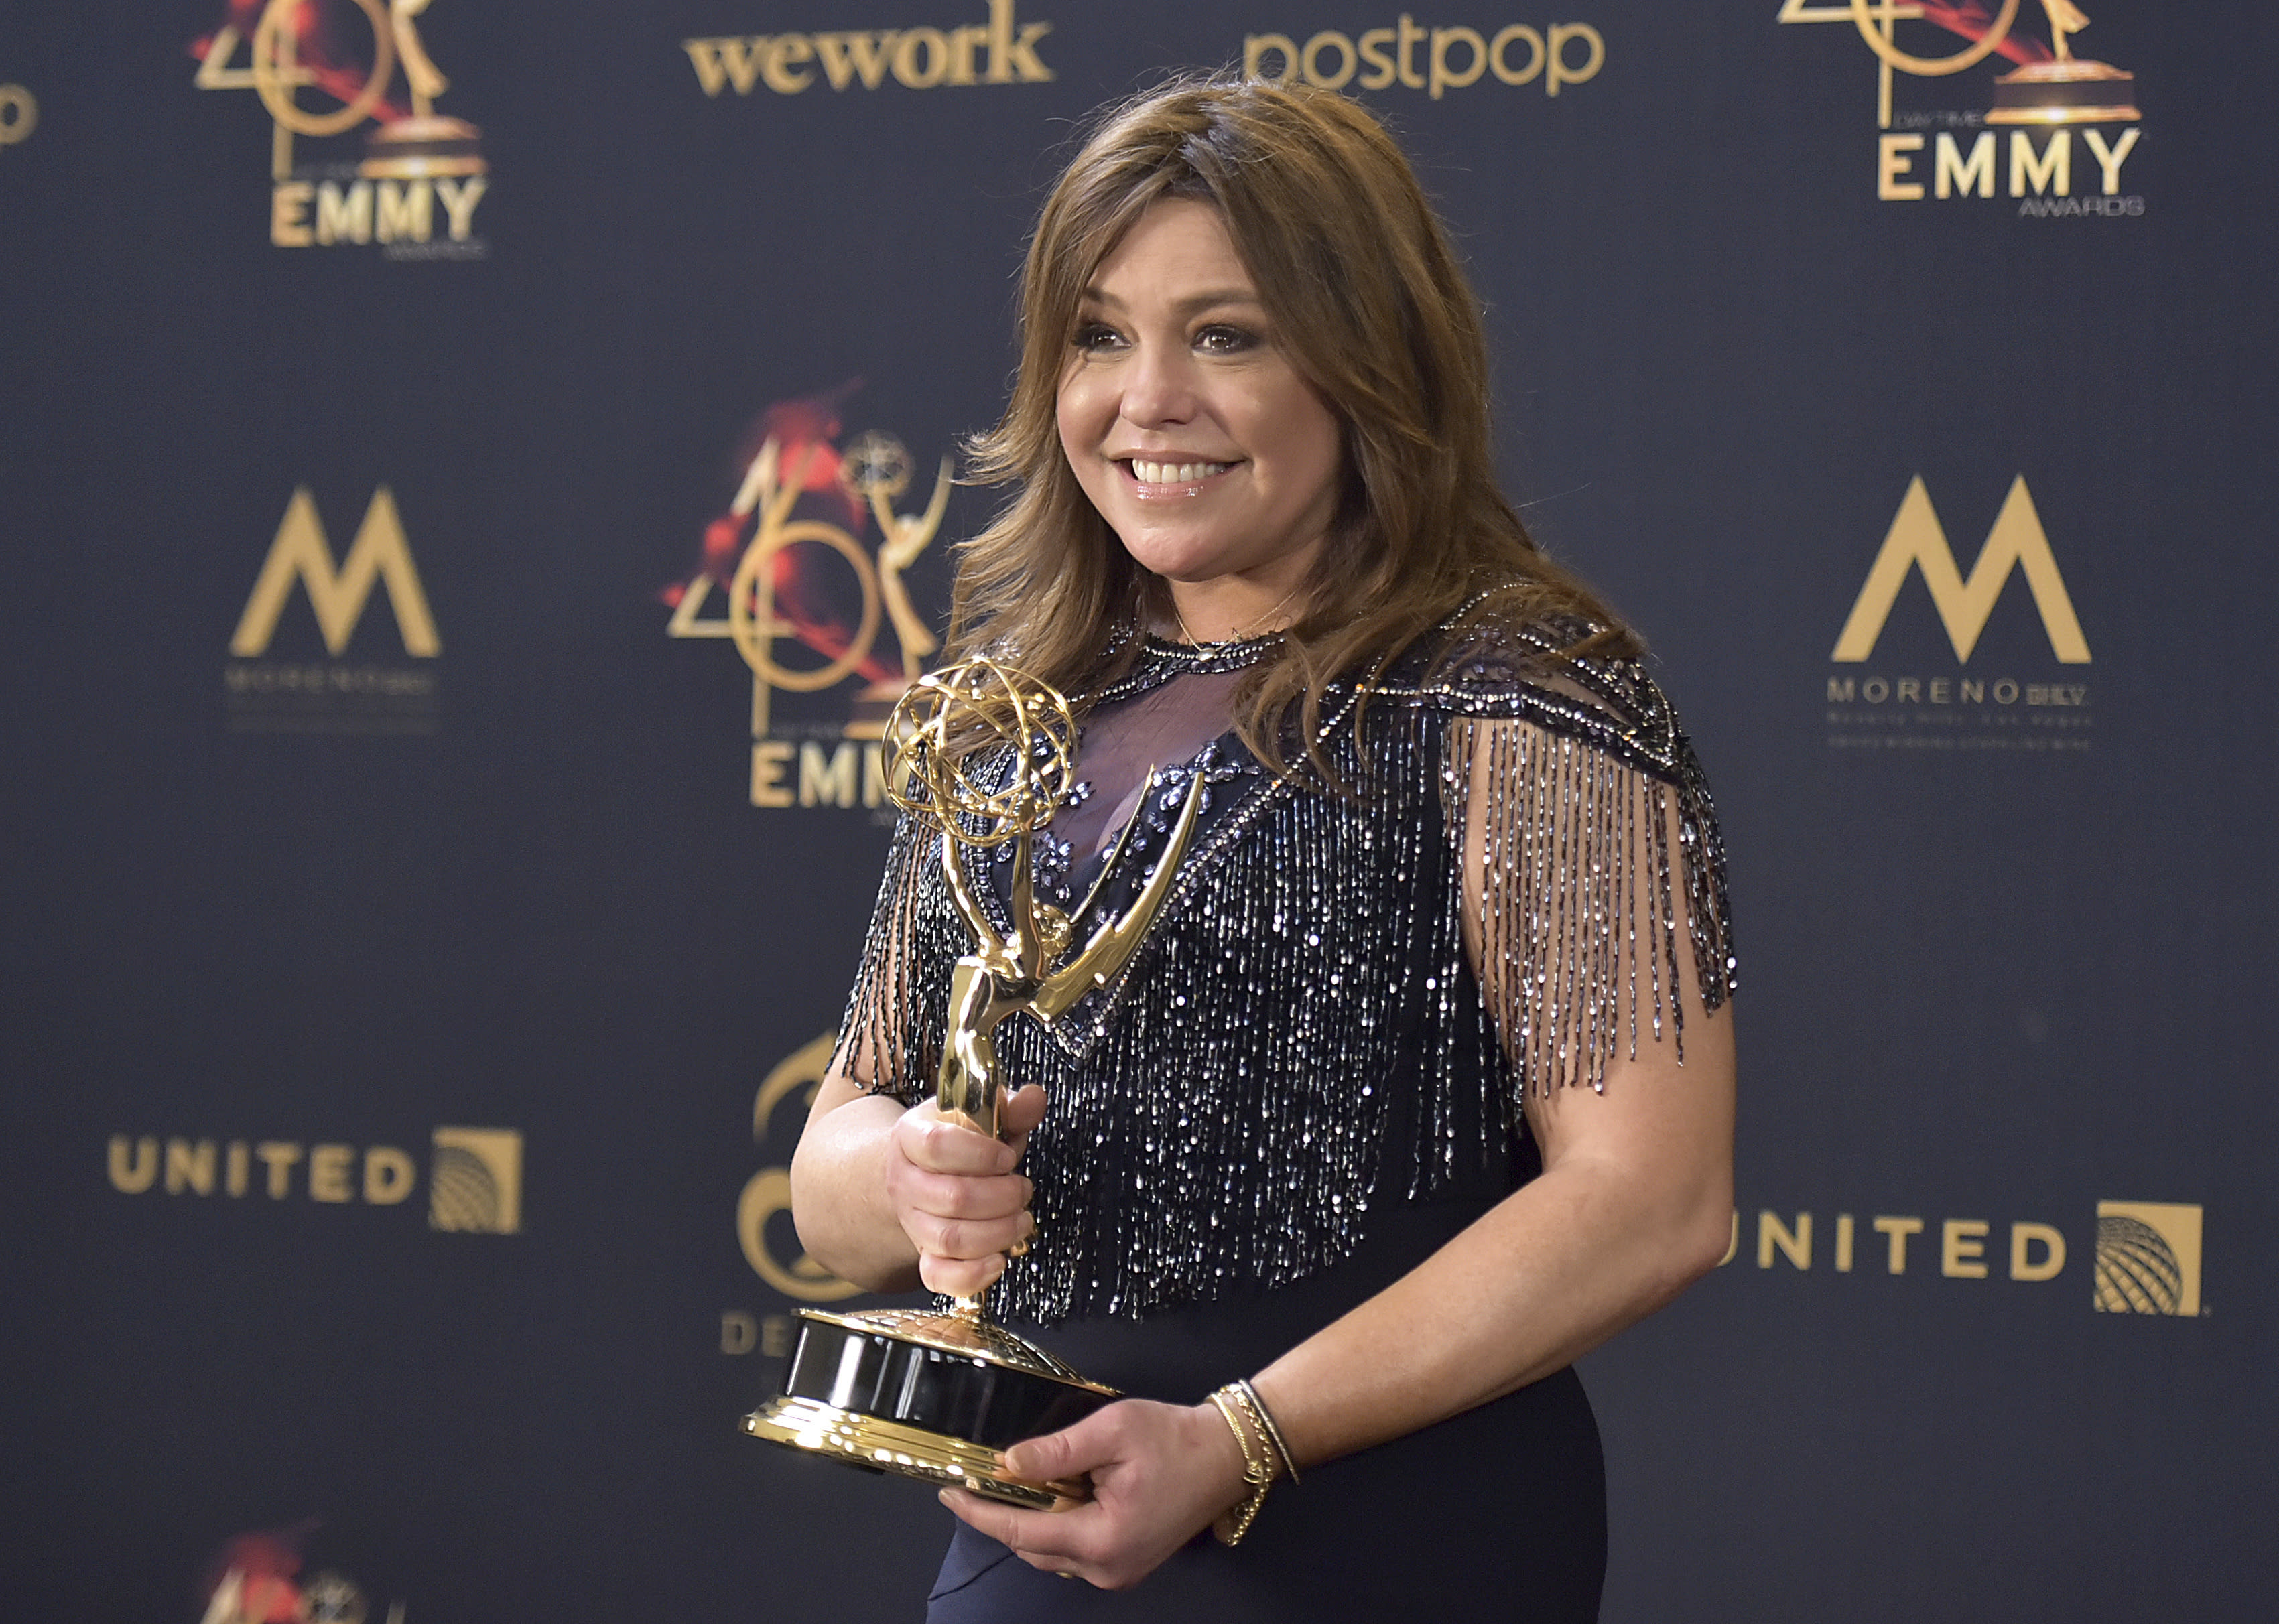 Rachael Ray's Home Where She's Been Filming Daytime Show ...Rachael Ray House Fire Update